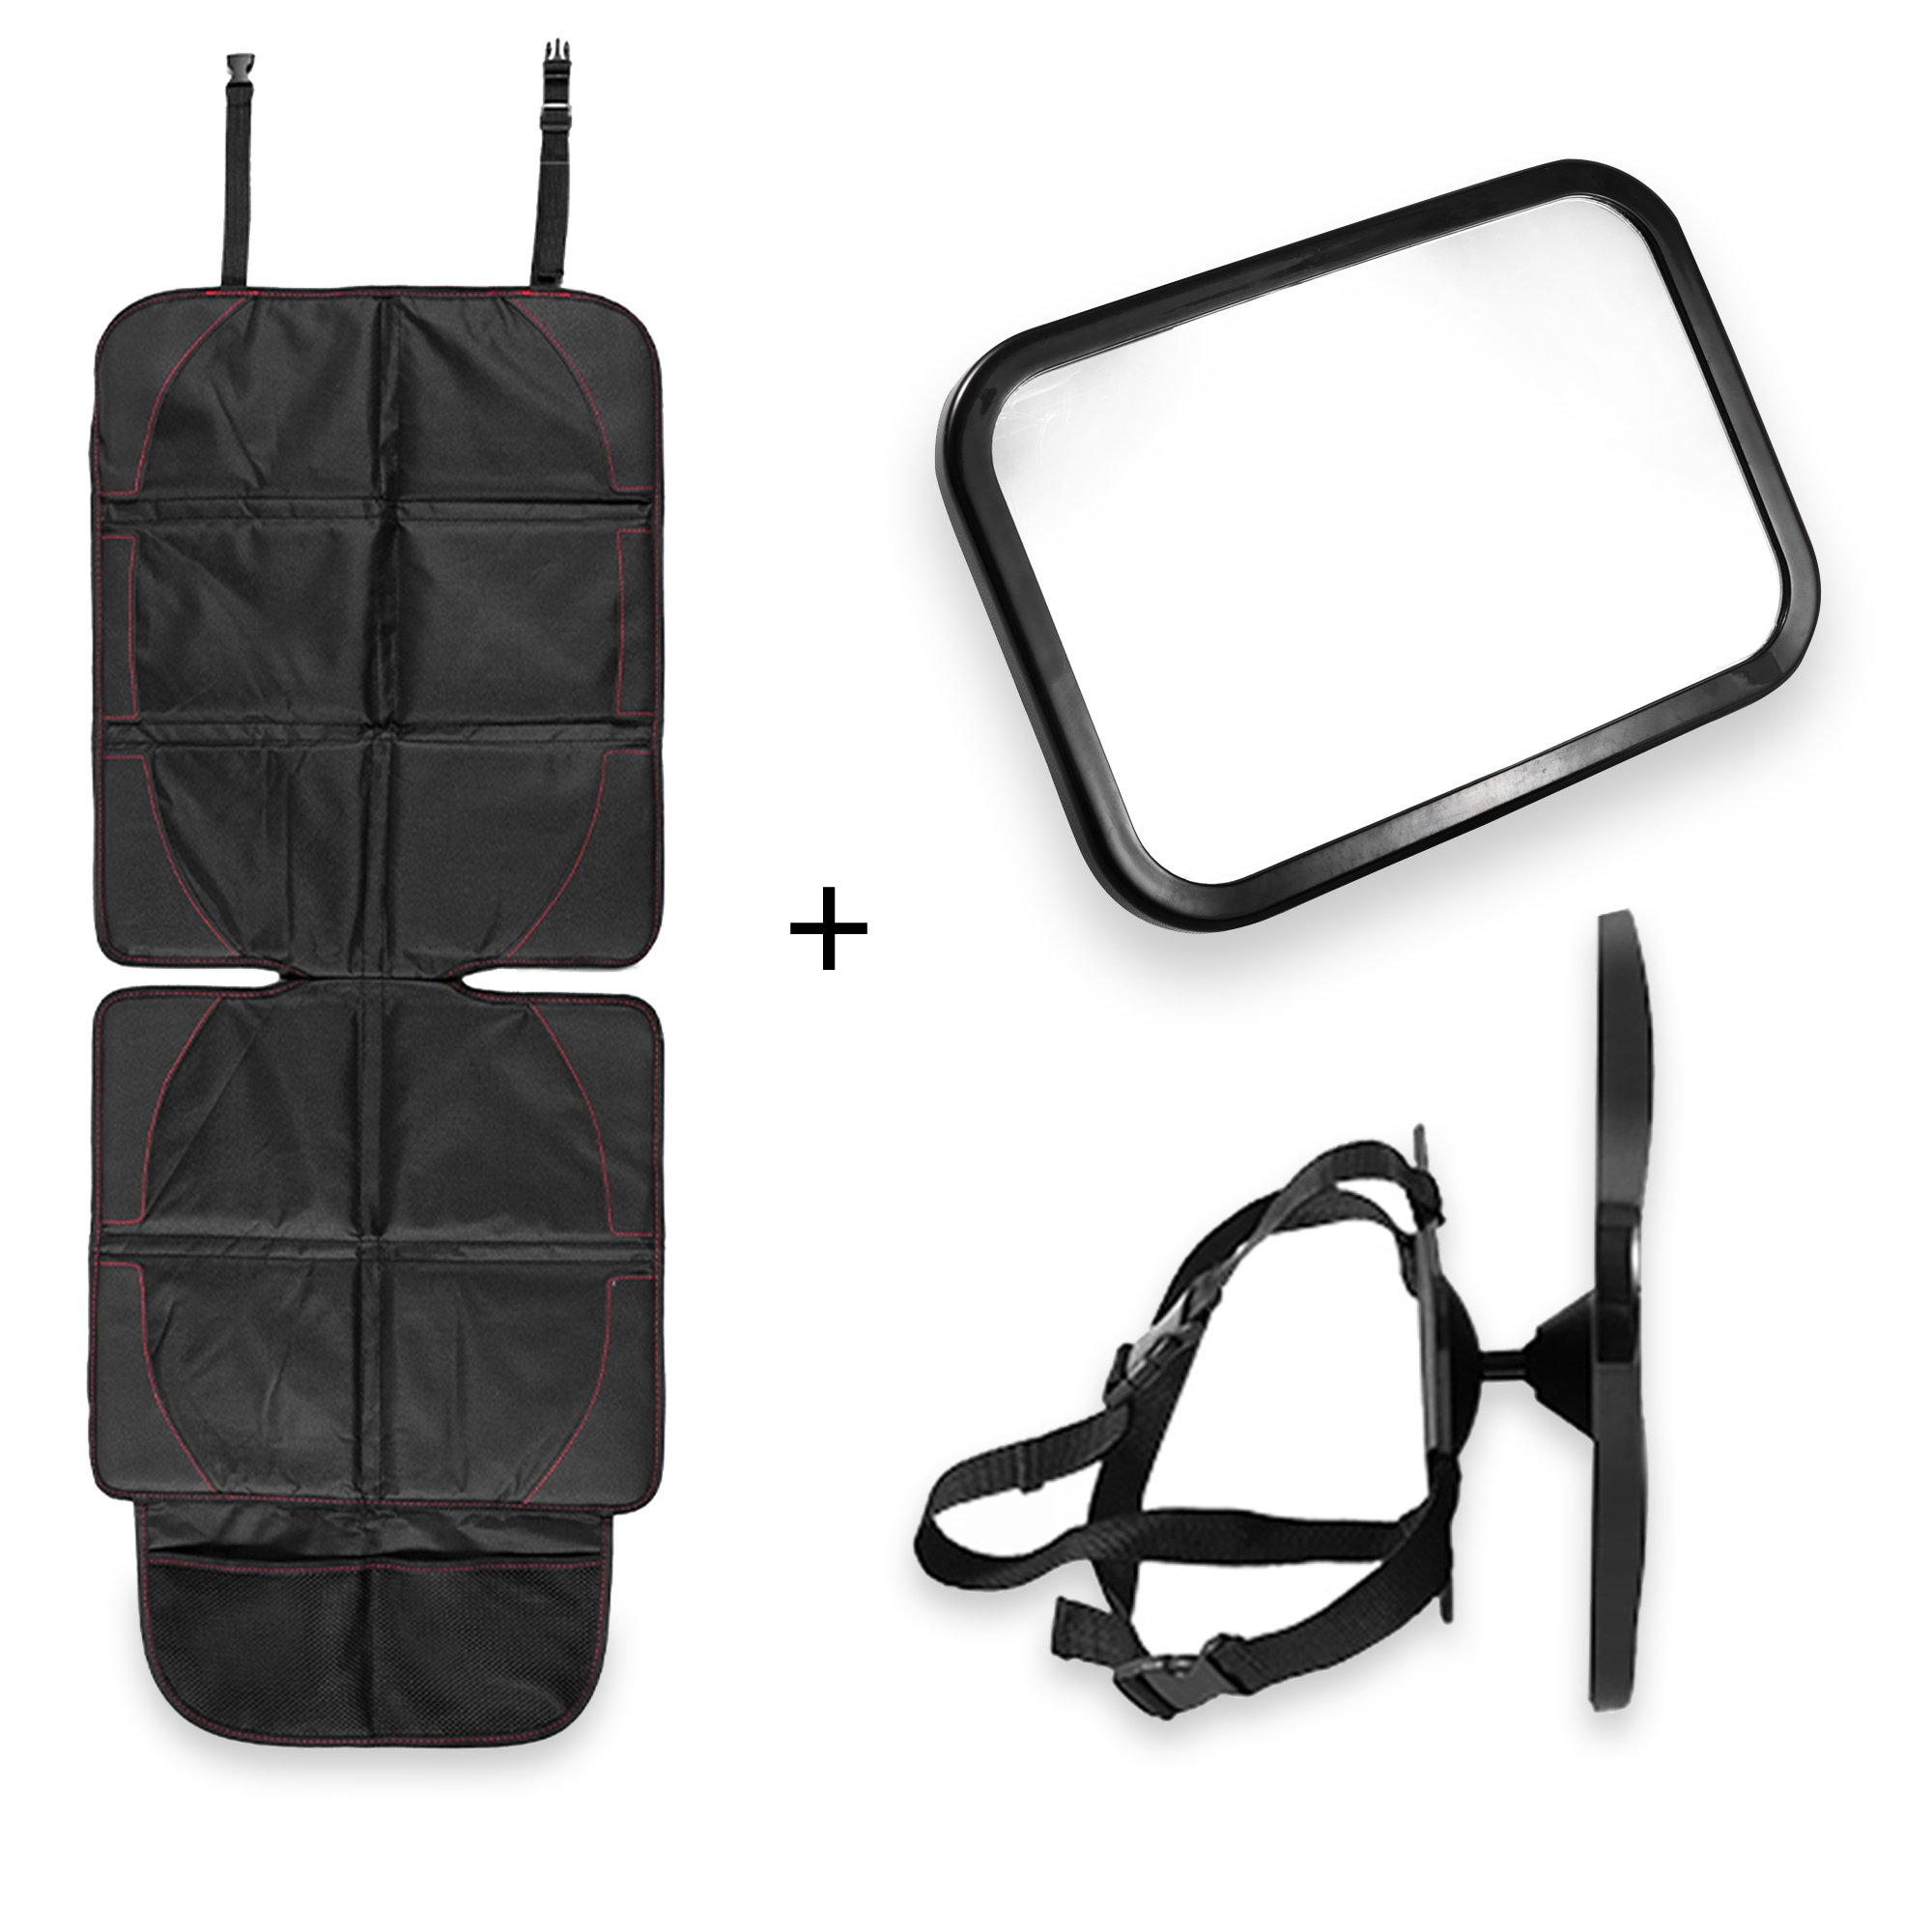 Simply Proper - Car Seat Protector & Baby Mirror Set Premium Waterproof Thick Pad Seat Cover with Large Mesh Pockets & a Shatterproof Infant Rear View Mirror Great for Rear Facing Car Seats